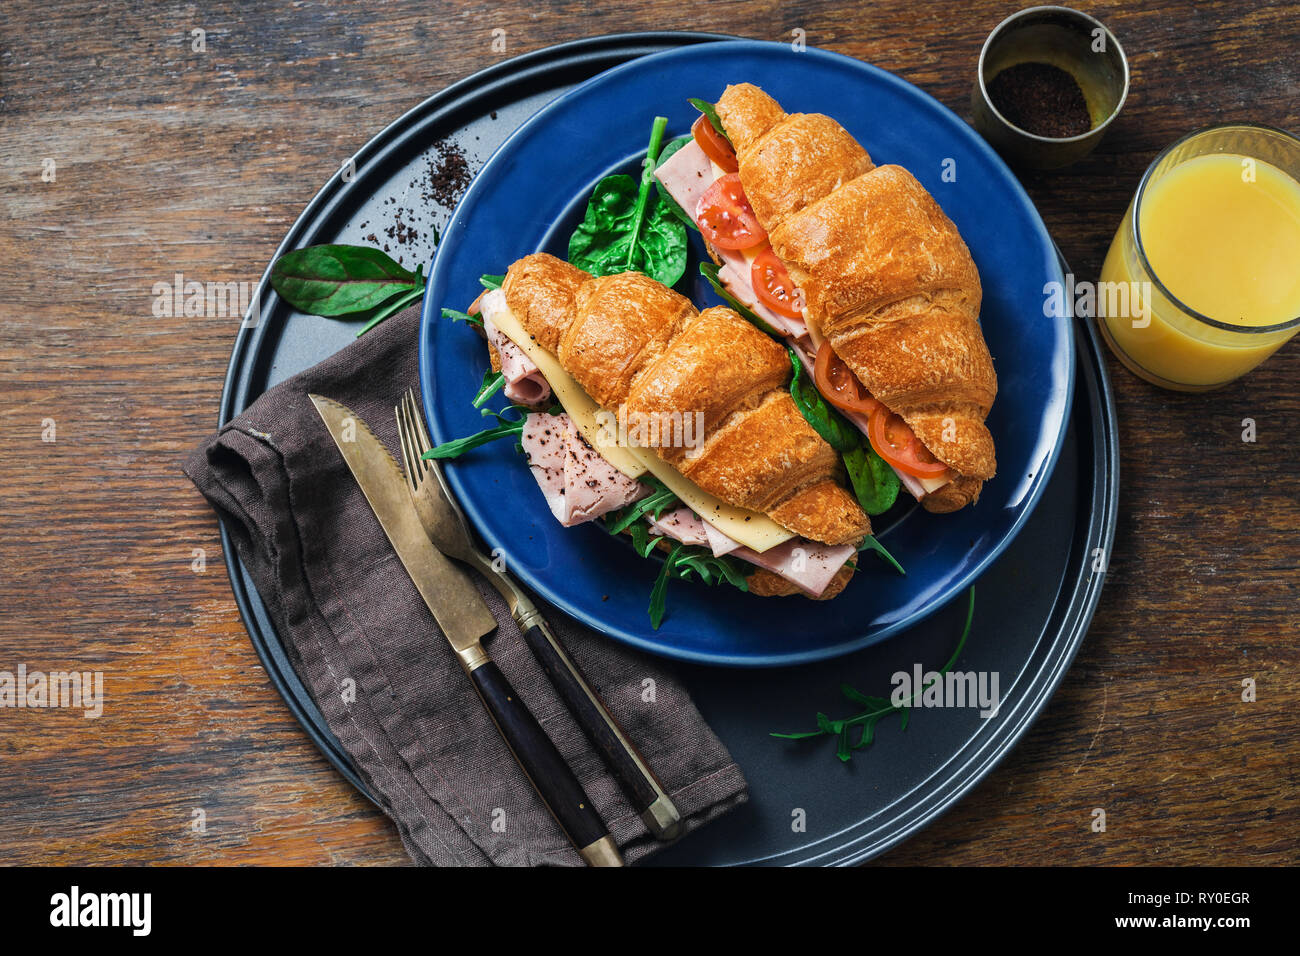 Fresh croissant sandwiches with orange juice on wooden table - Stock Image